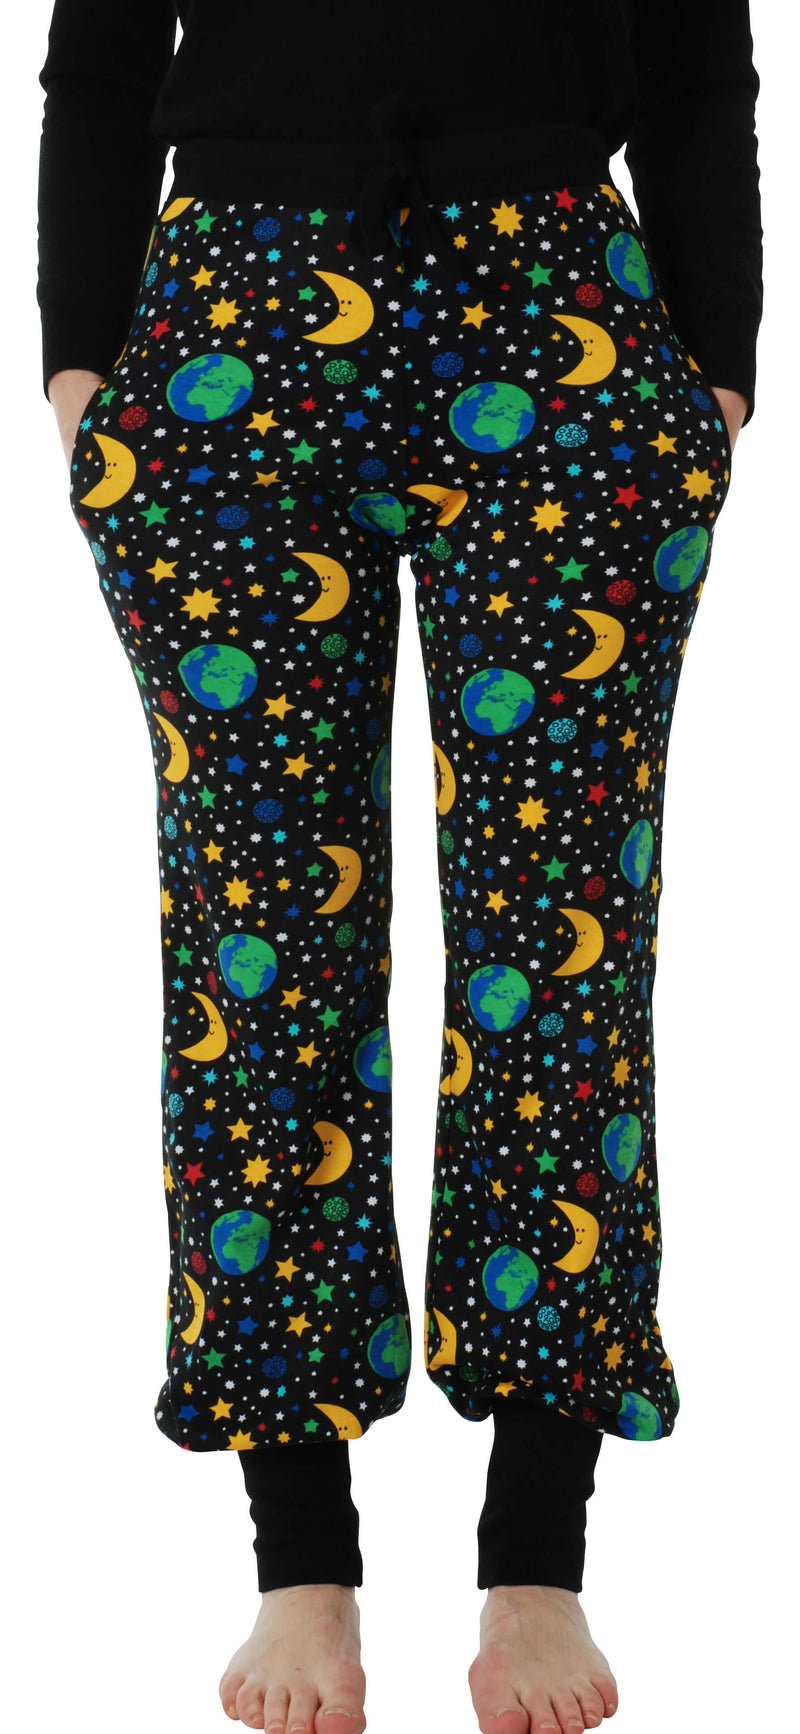 Adult Baggy Pants - Mother Earth - Black